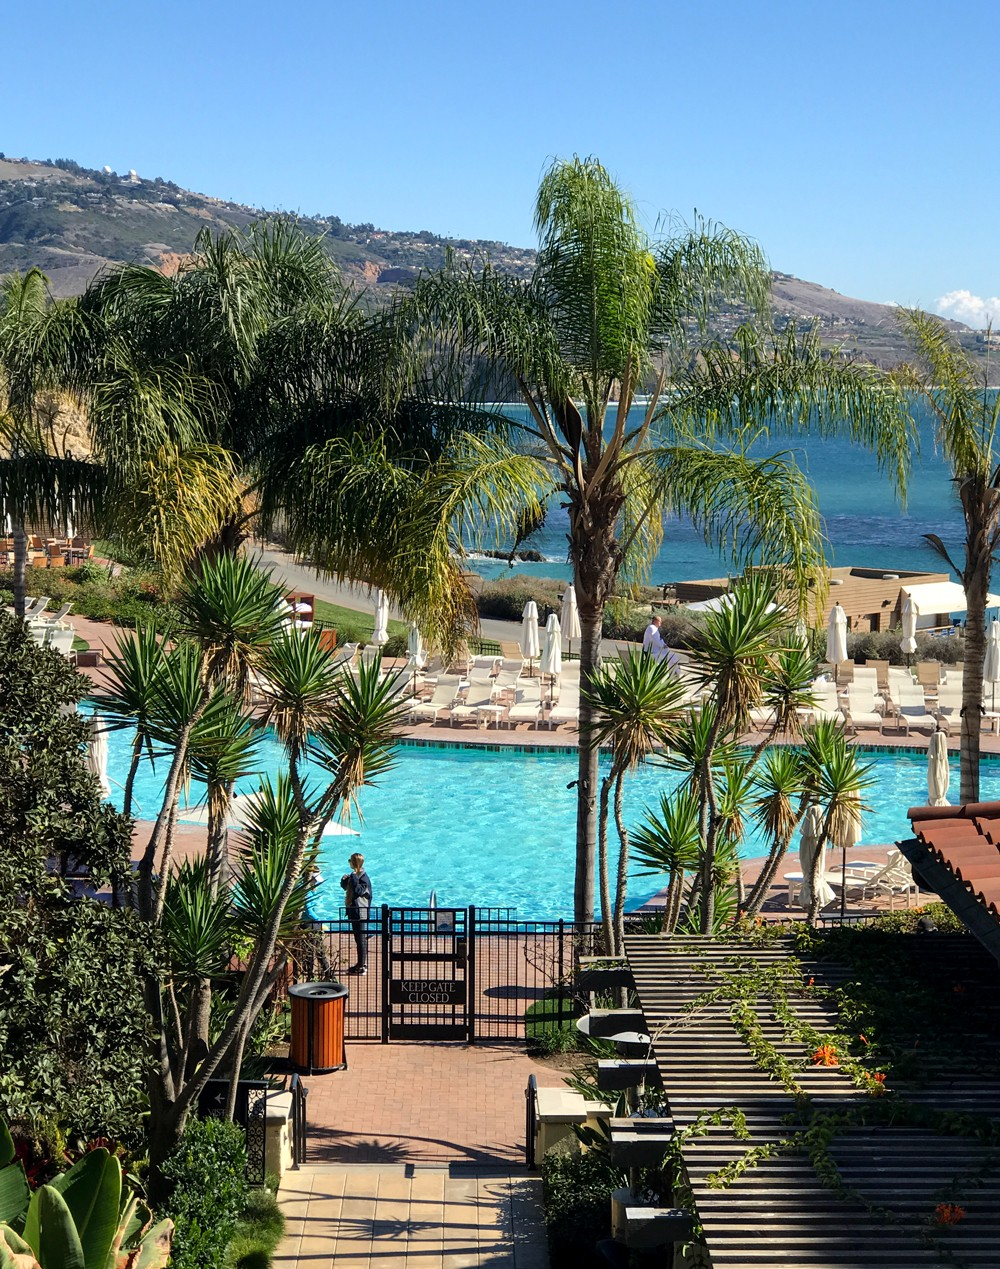 Terranea Pool View - Wanderlust Wednesday Terrenea Resort Review by popular Los Angeles blogger My Beauty Bunny